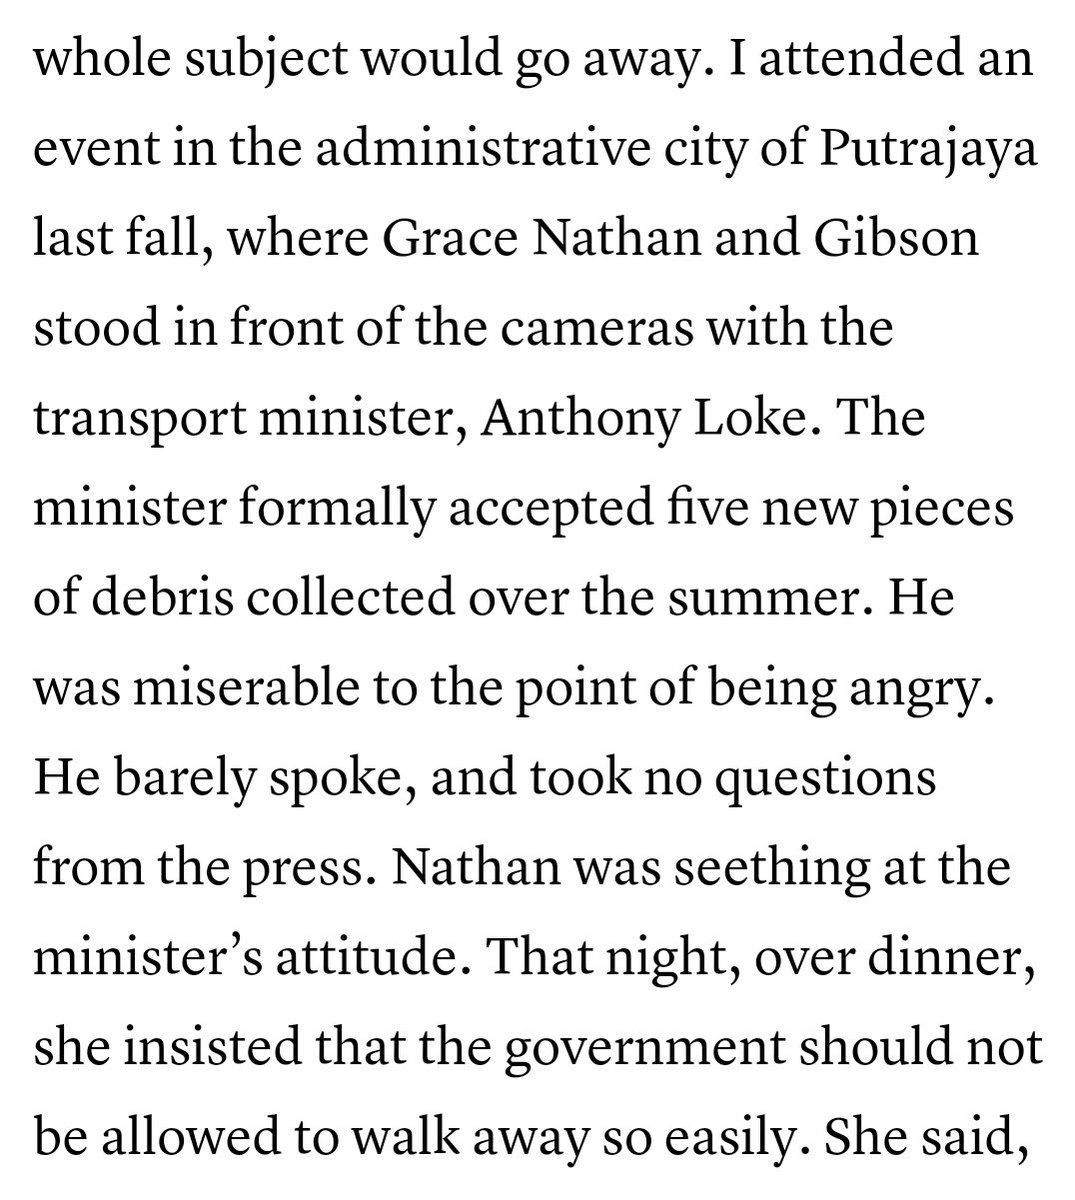 Is this the real Anthony Loke that we don't know of?